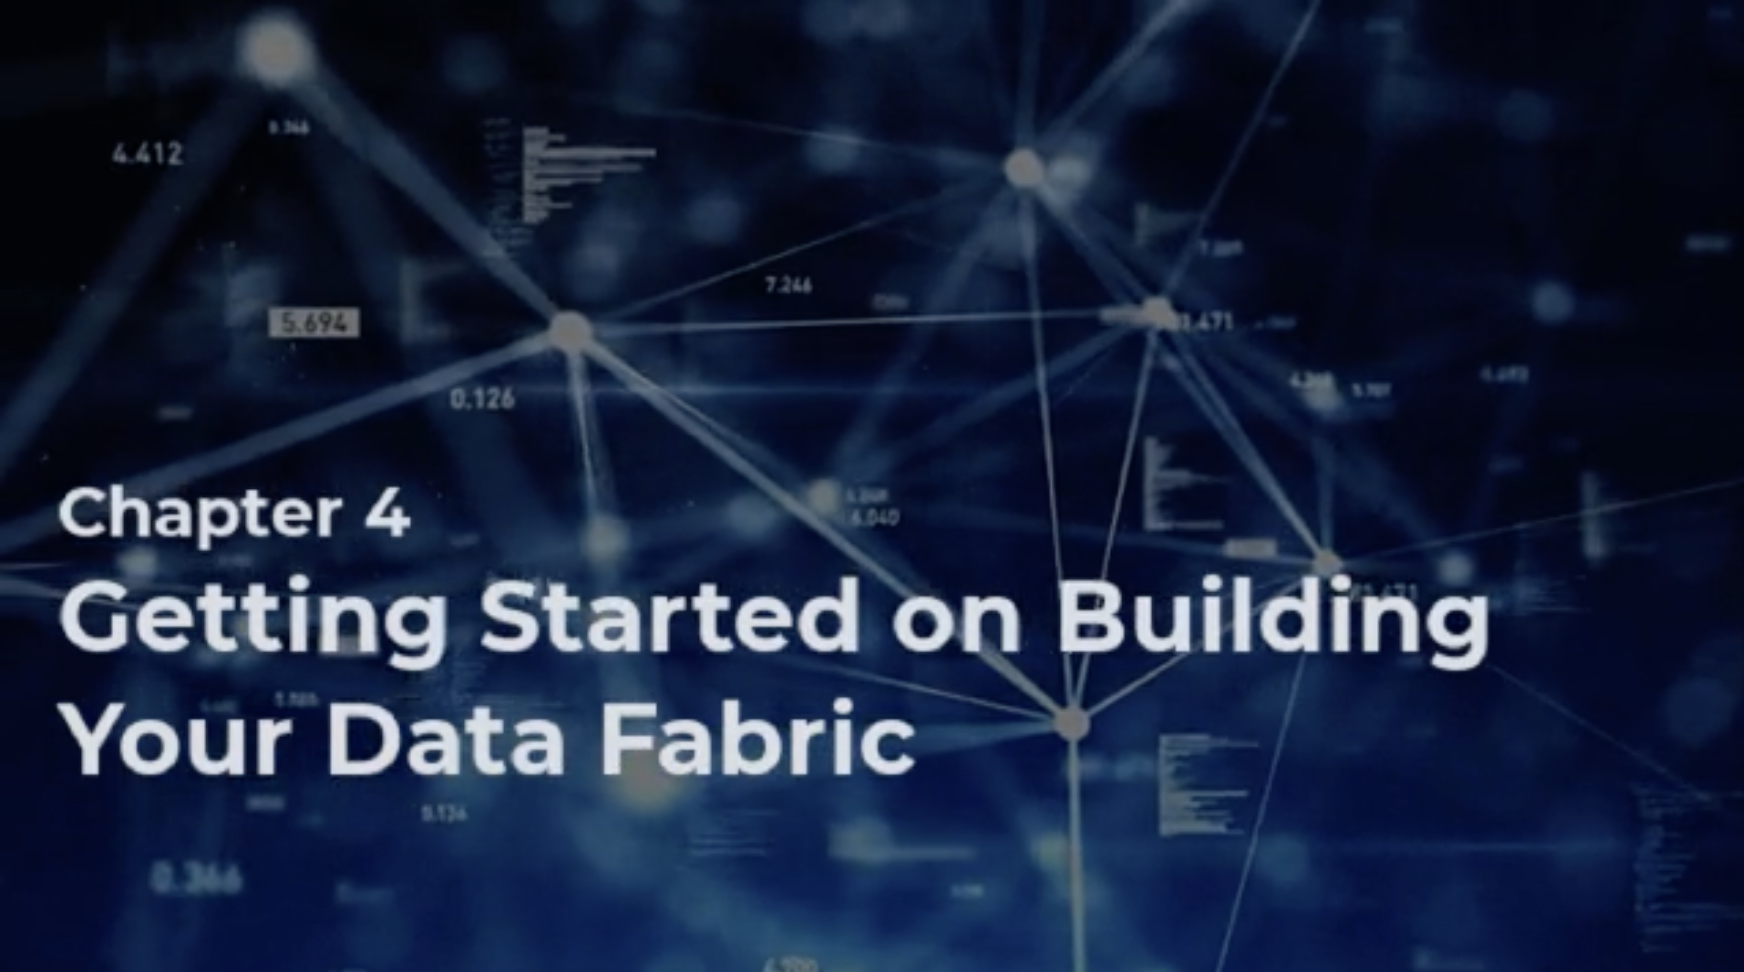 Getting Started on Building Your Data Fabric